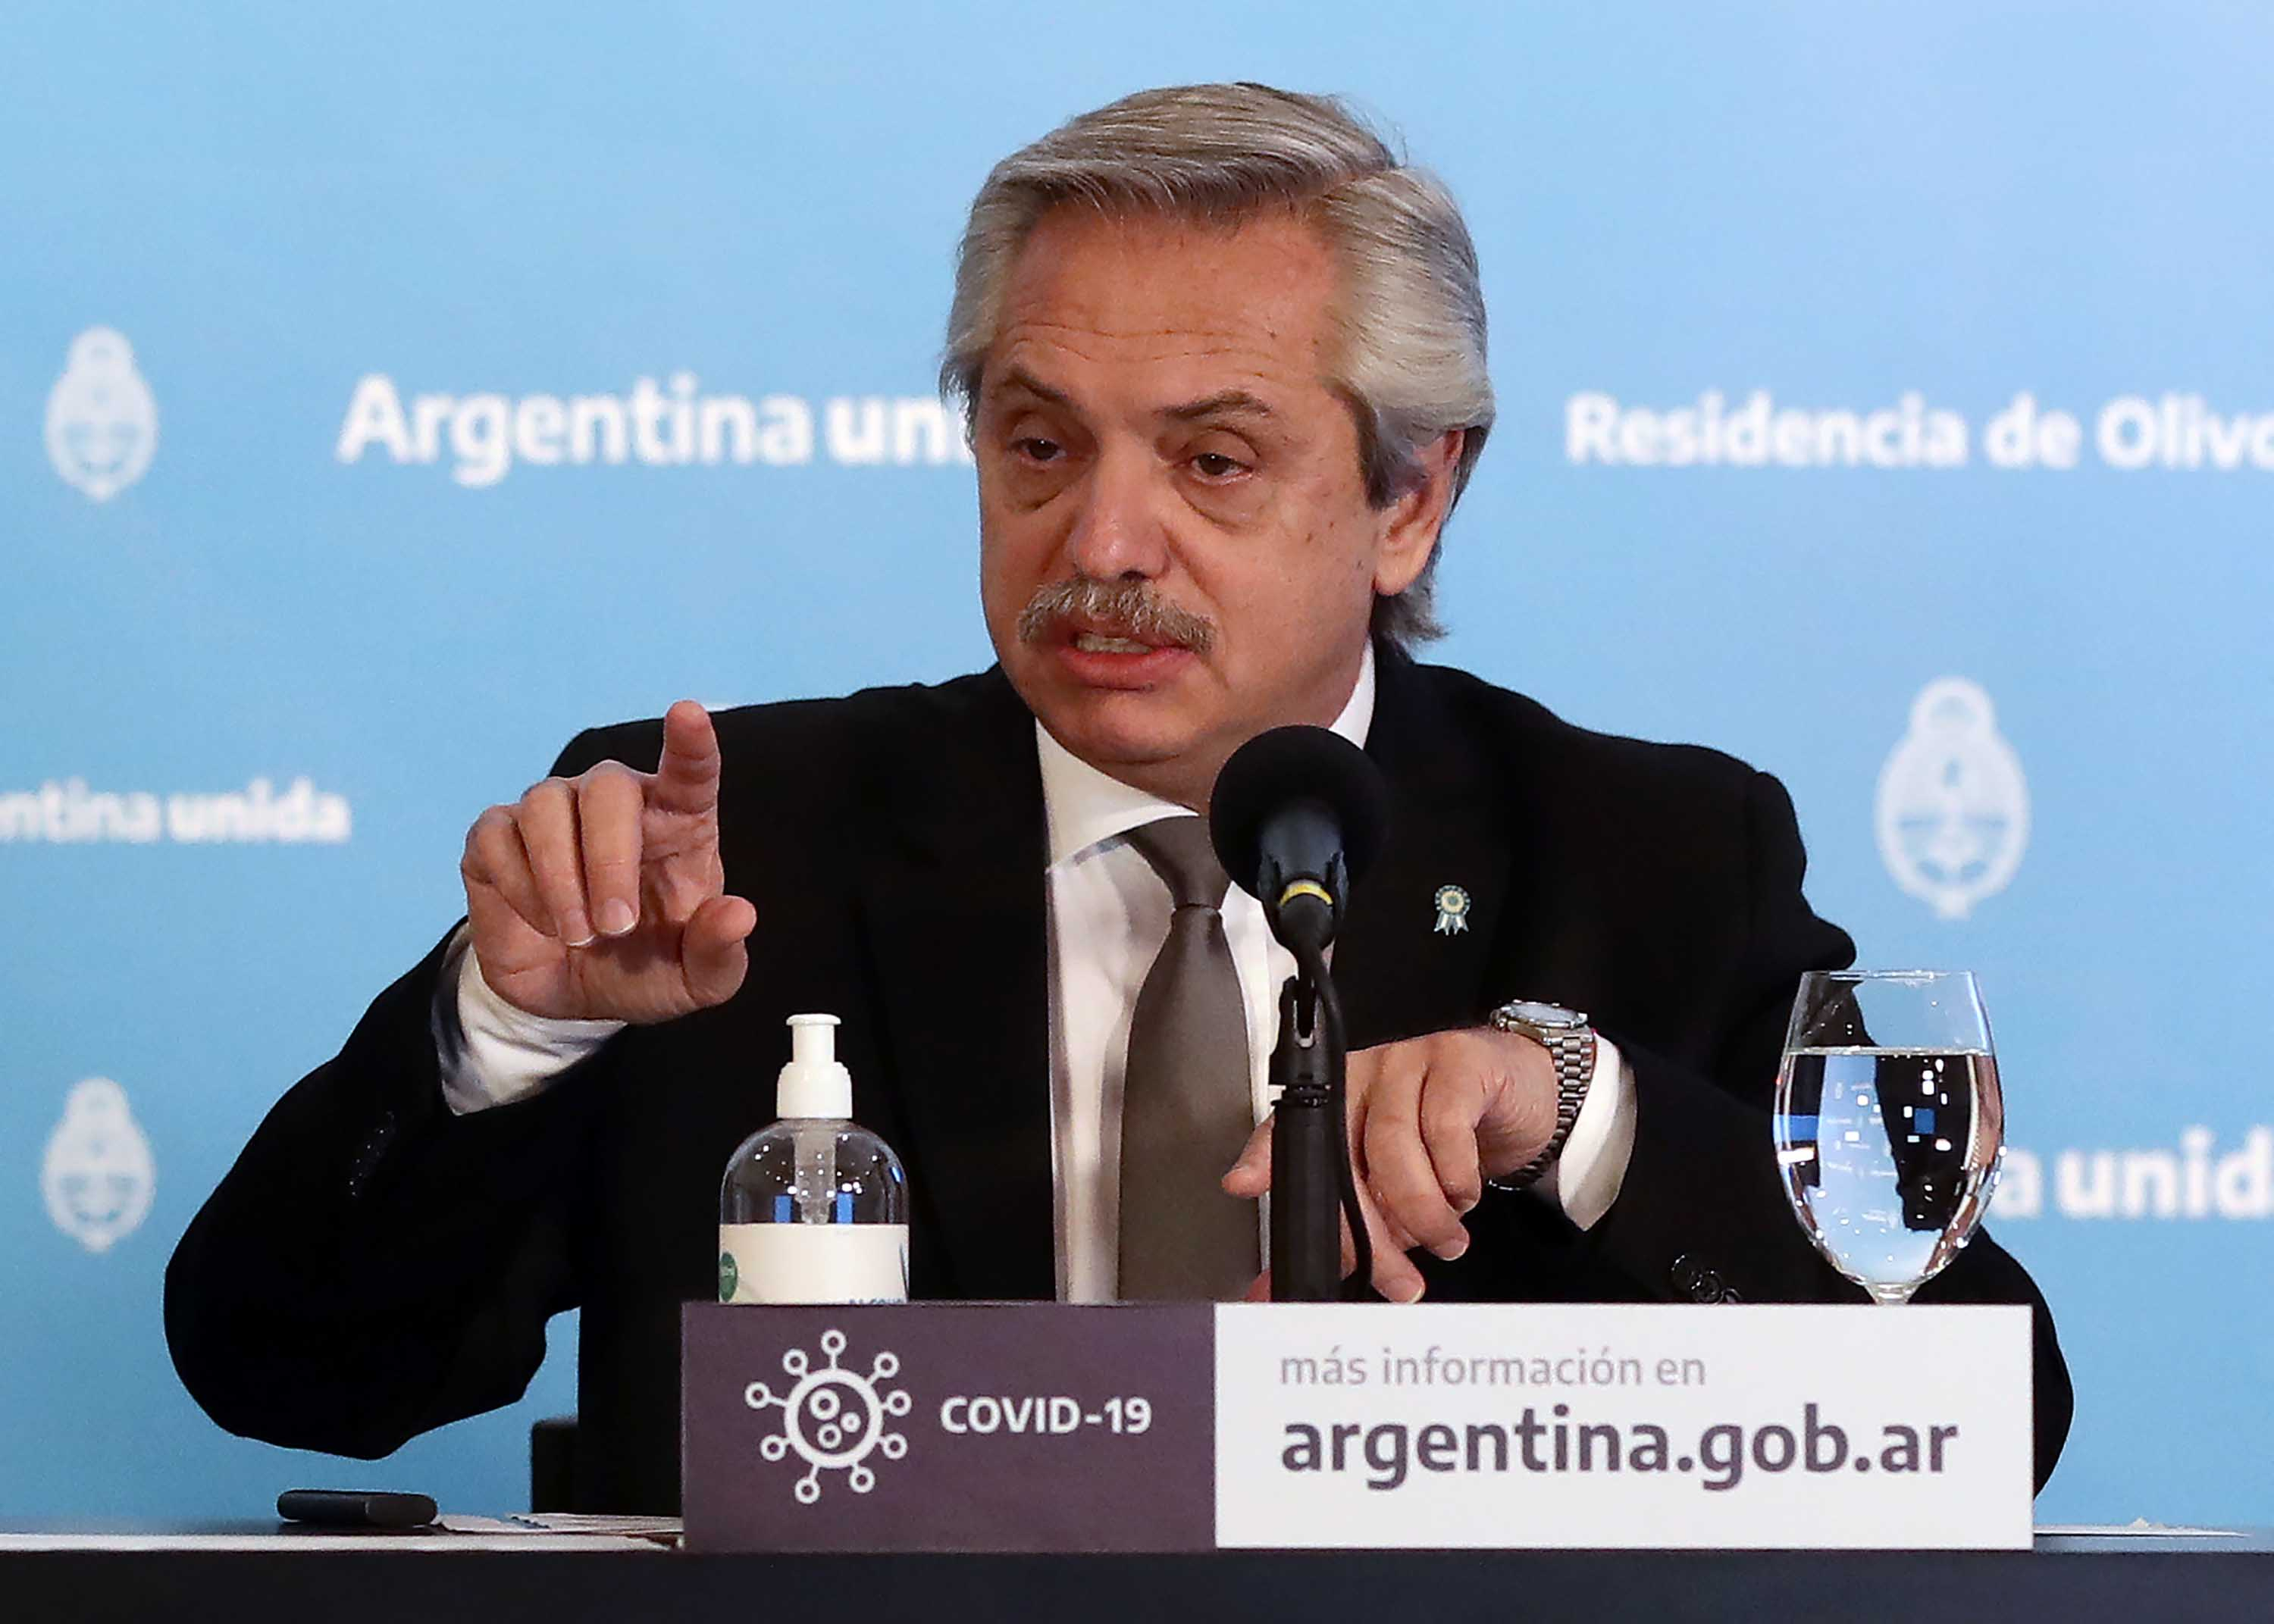 Argentine President Alberto Fernandez is pictured speaking at a press conference about coronavirus lockdown measures in Olivos, Argentina, on May 23.